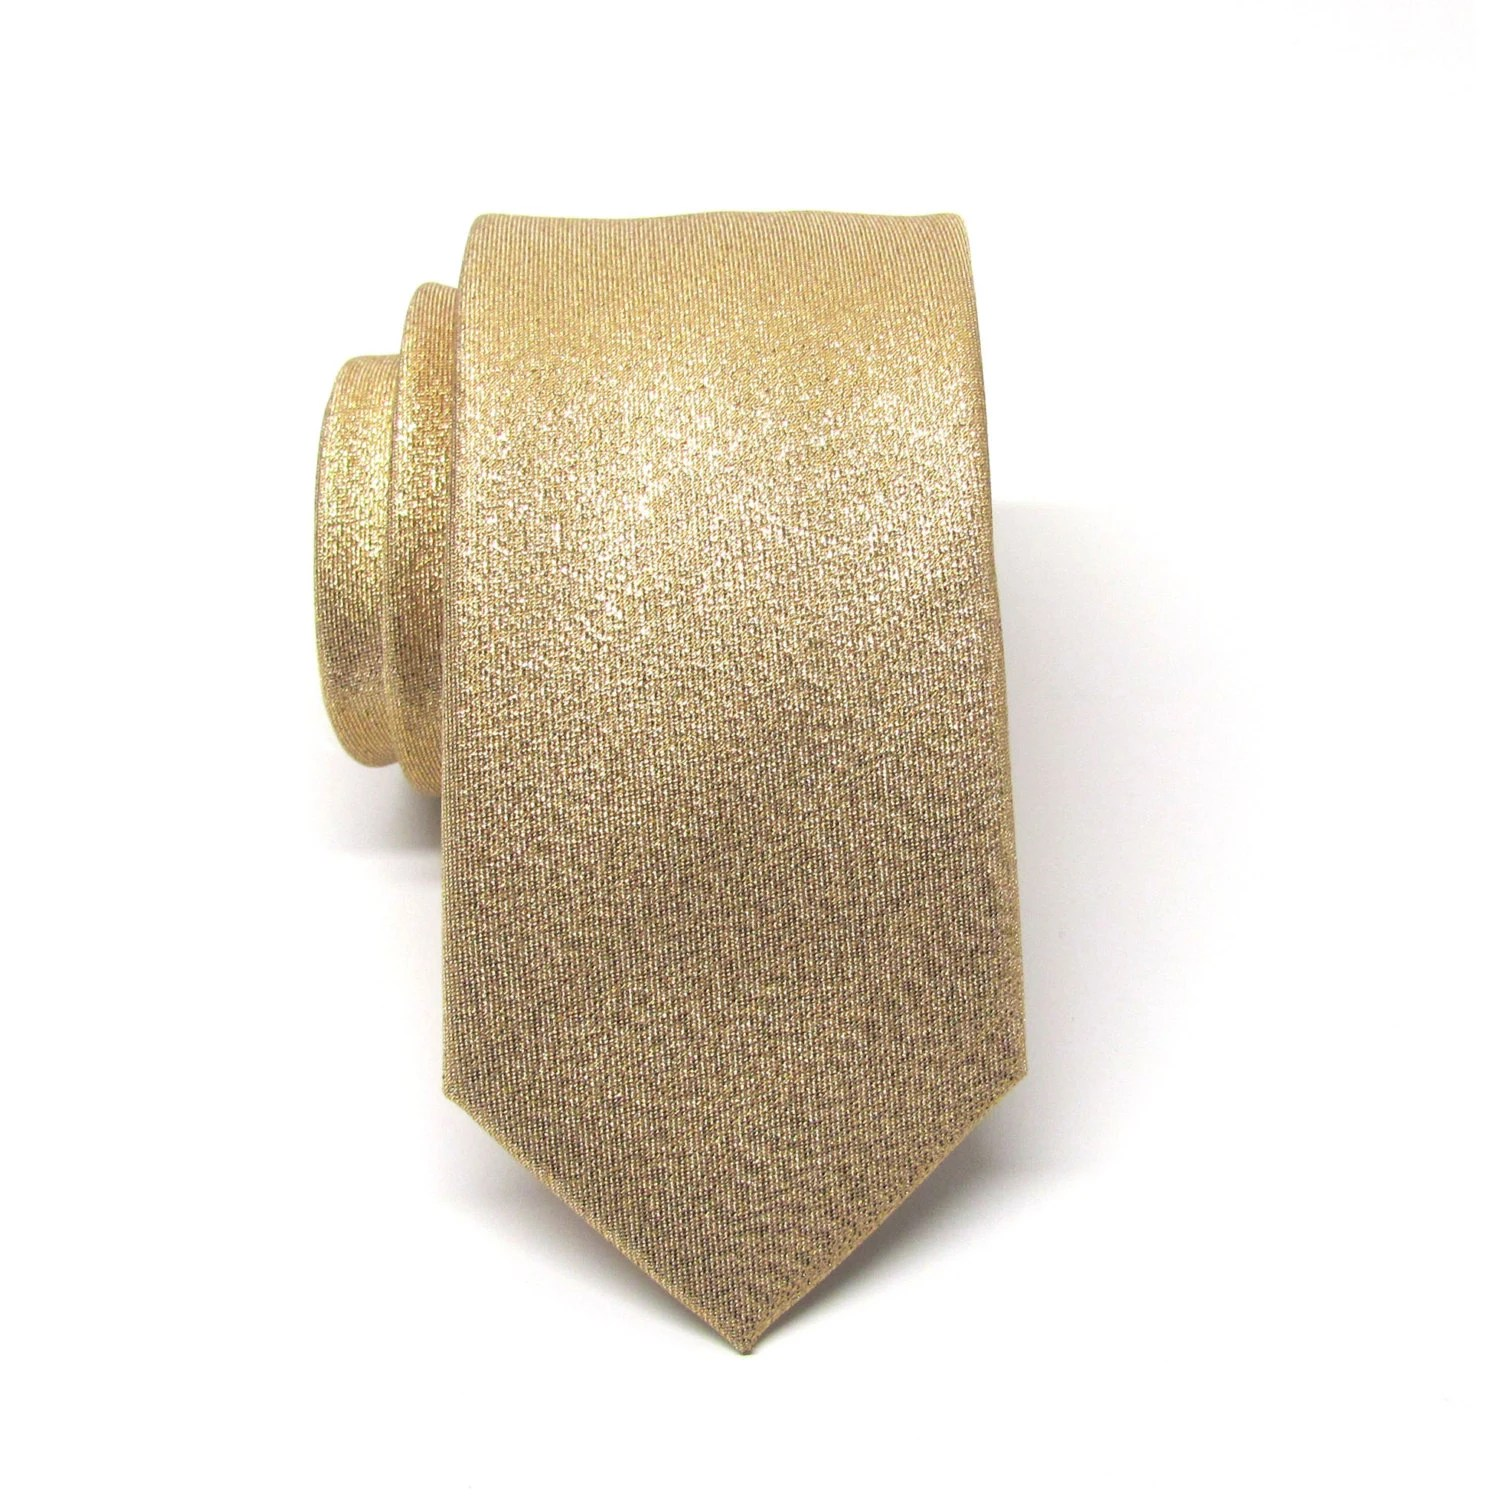 Mens Ties Necktie Metallic Lam Gold Metallic Skinny Tie